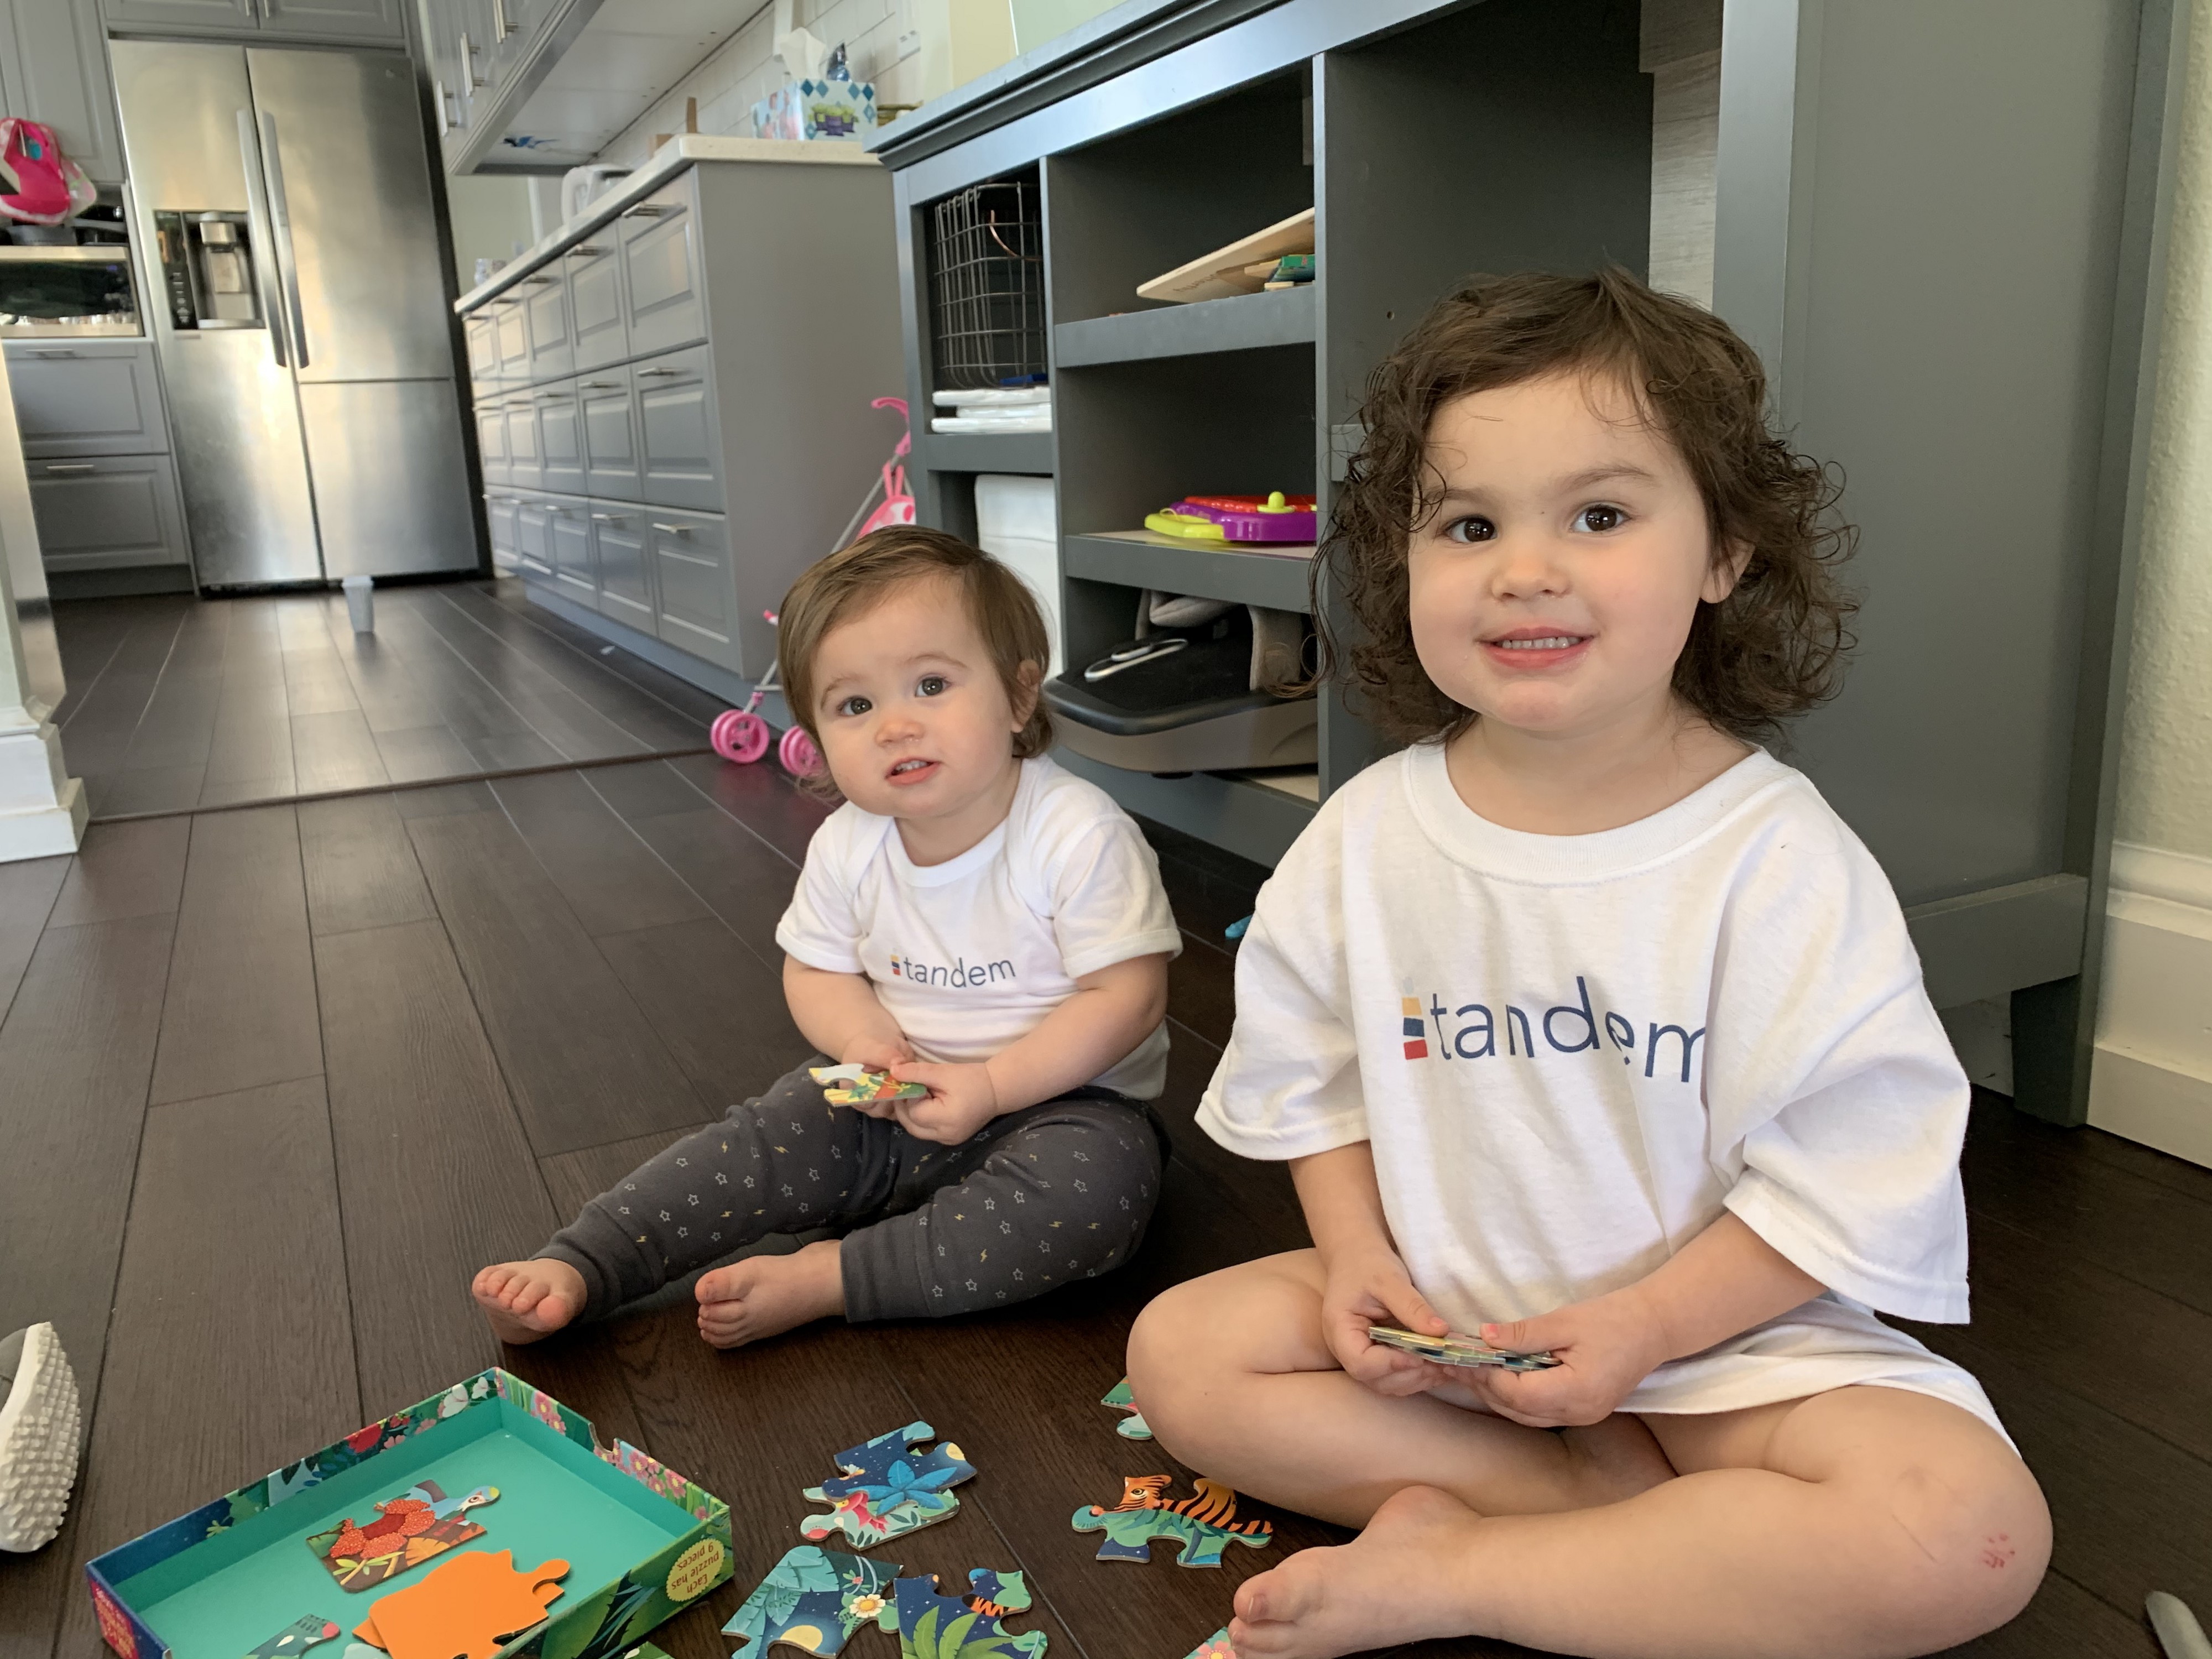 Two toddlers in Tandem tee shirts attempting to put a puzzle together.